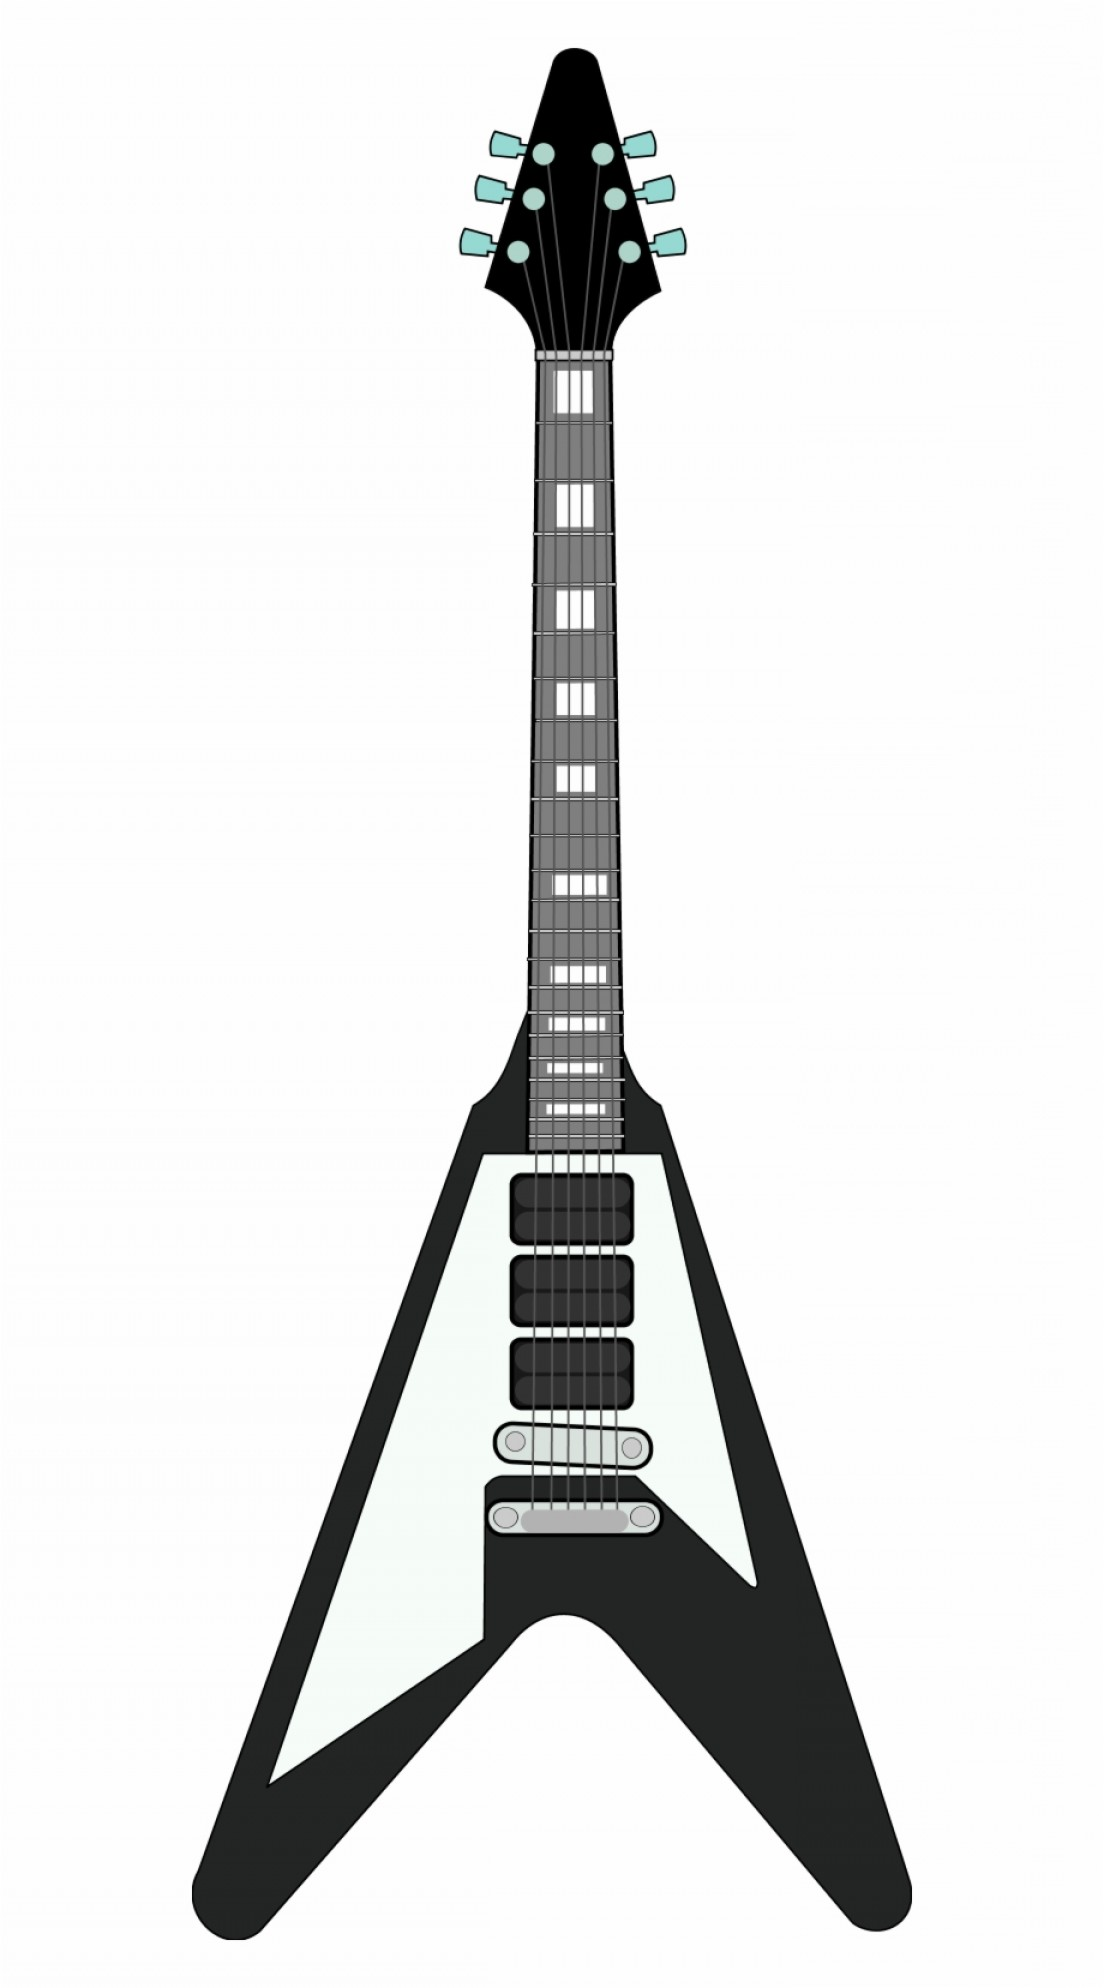 Vector Guitar Clip Art Black And White: Oxororguitar Black And White Black And White Guitar